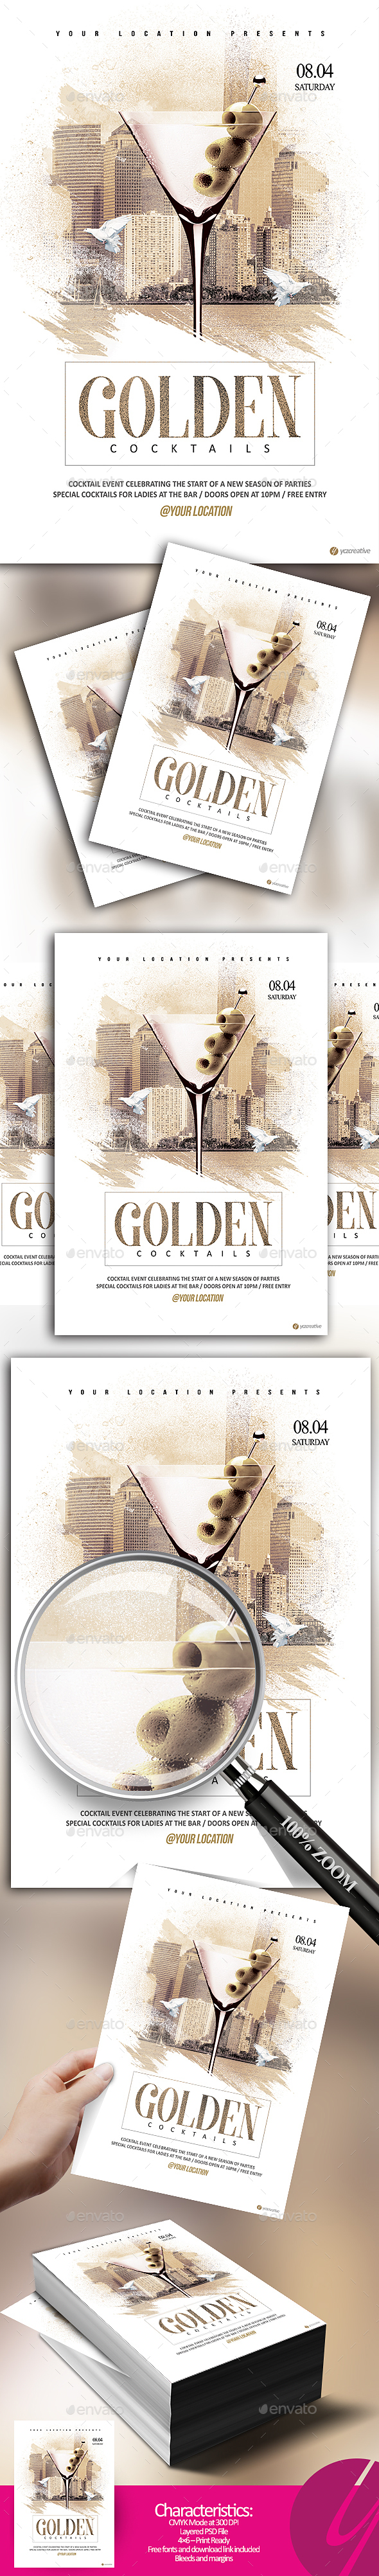 Golden Cocktail Flyer - Clubs & Parties Events